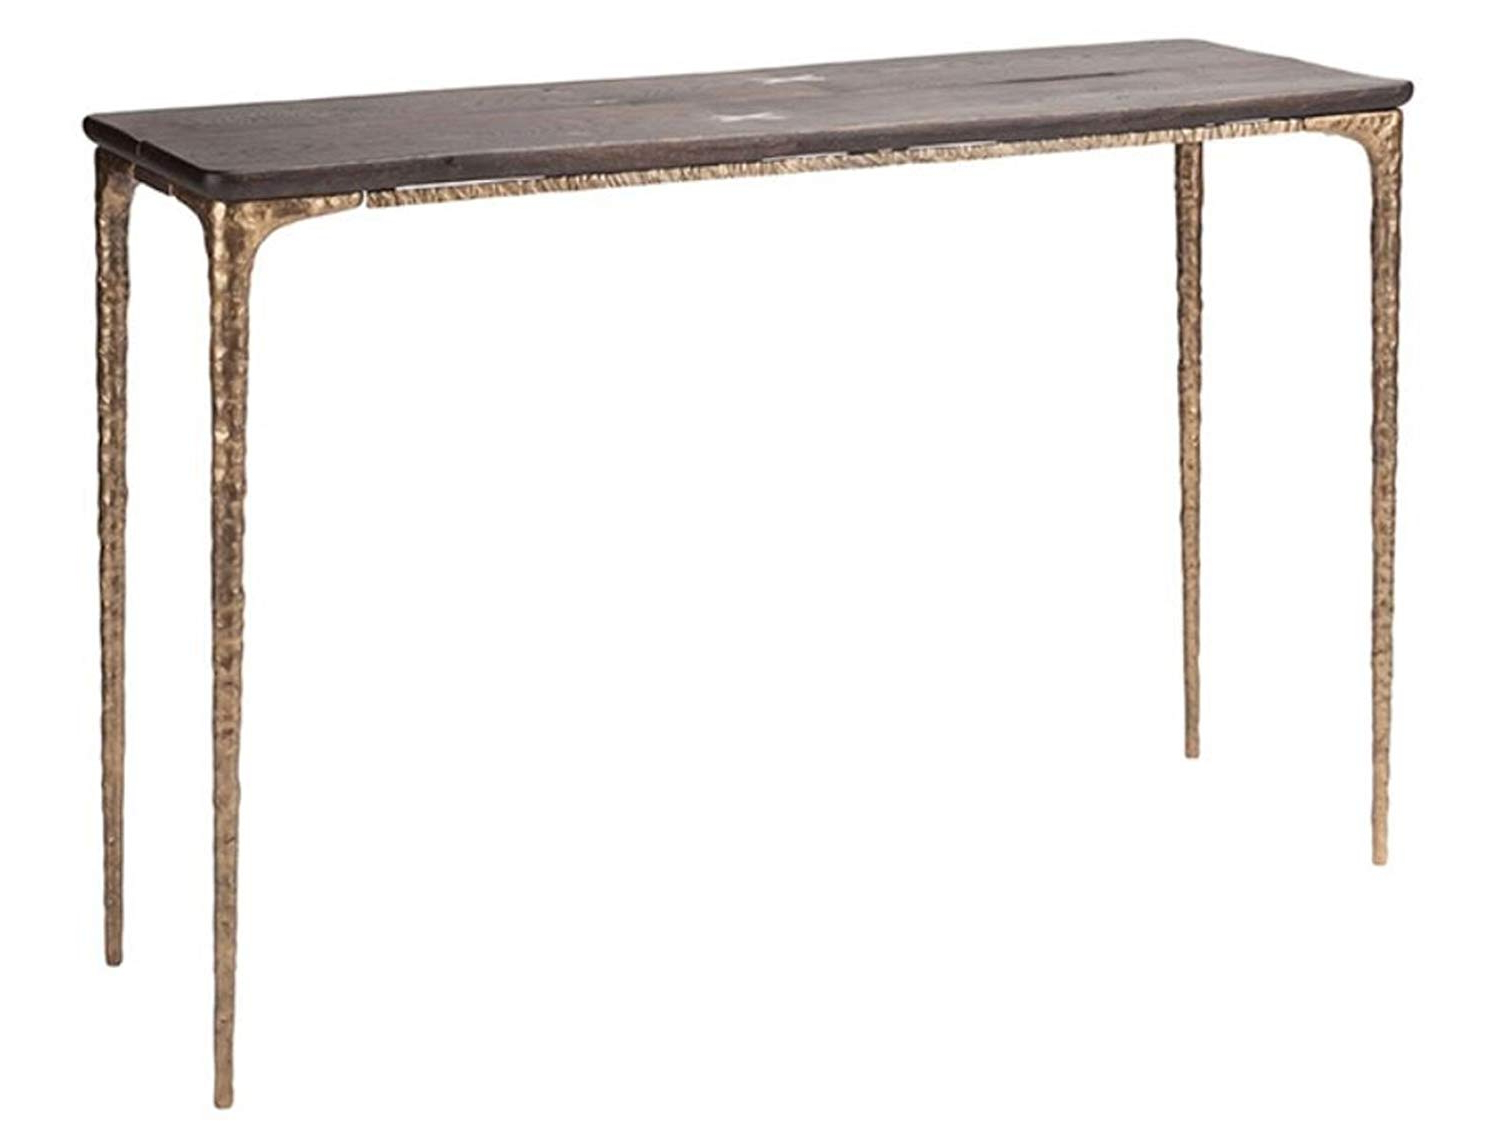 Dining Tables In Seared Oak With Brass Detail For Most Up To Date Amazon: Kulu Console In Seared Oak And Bronze Legs (View 21 of 30)